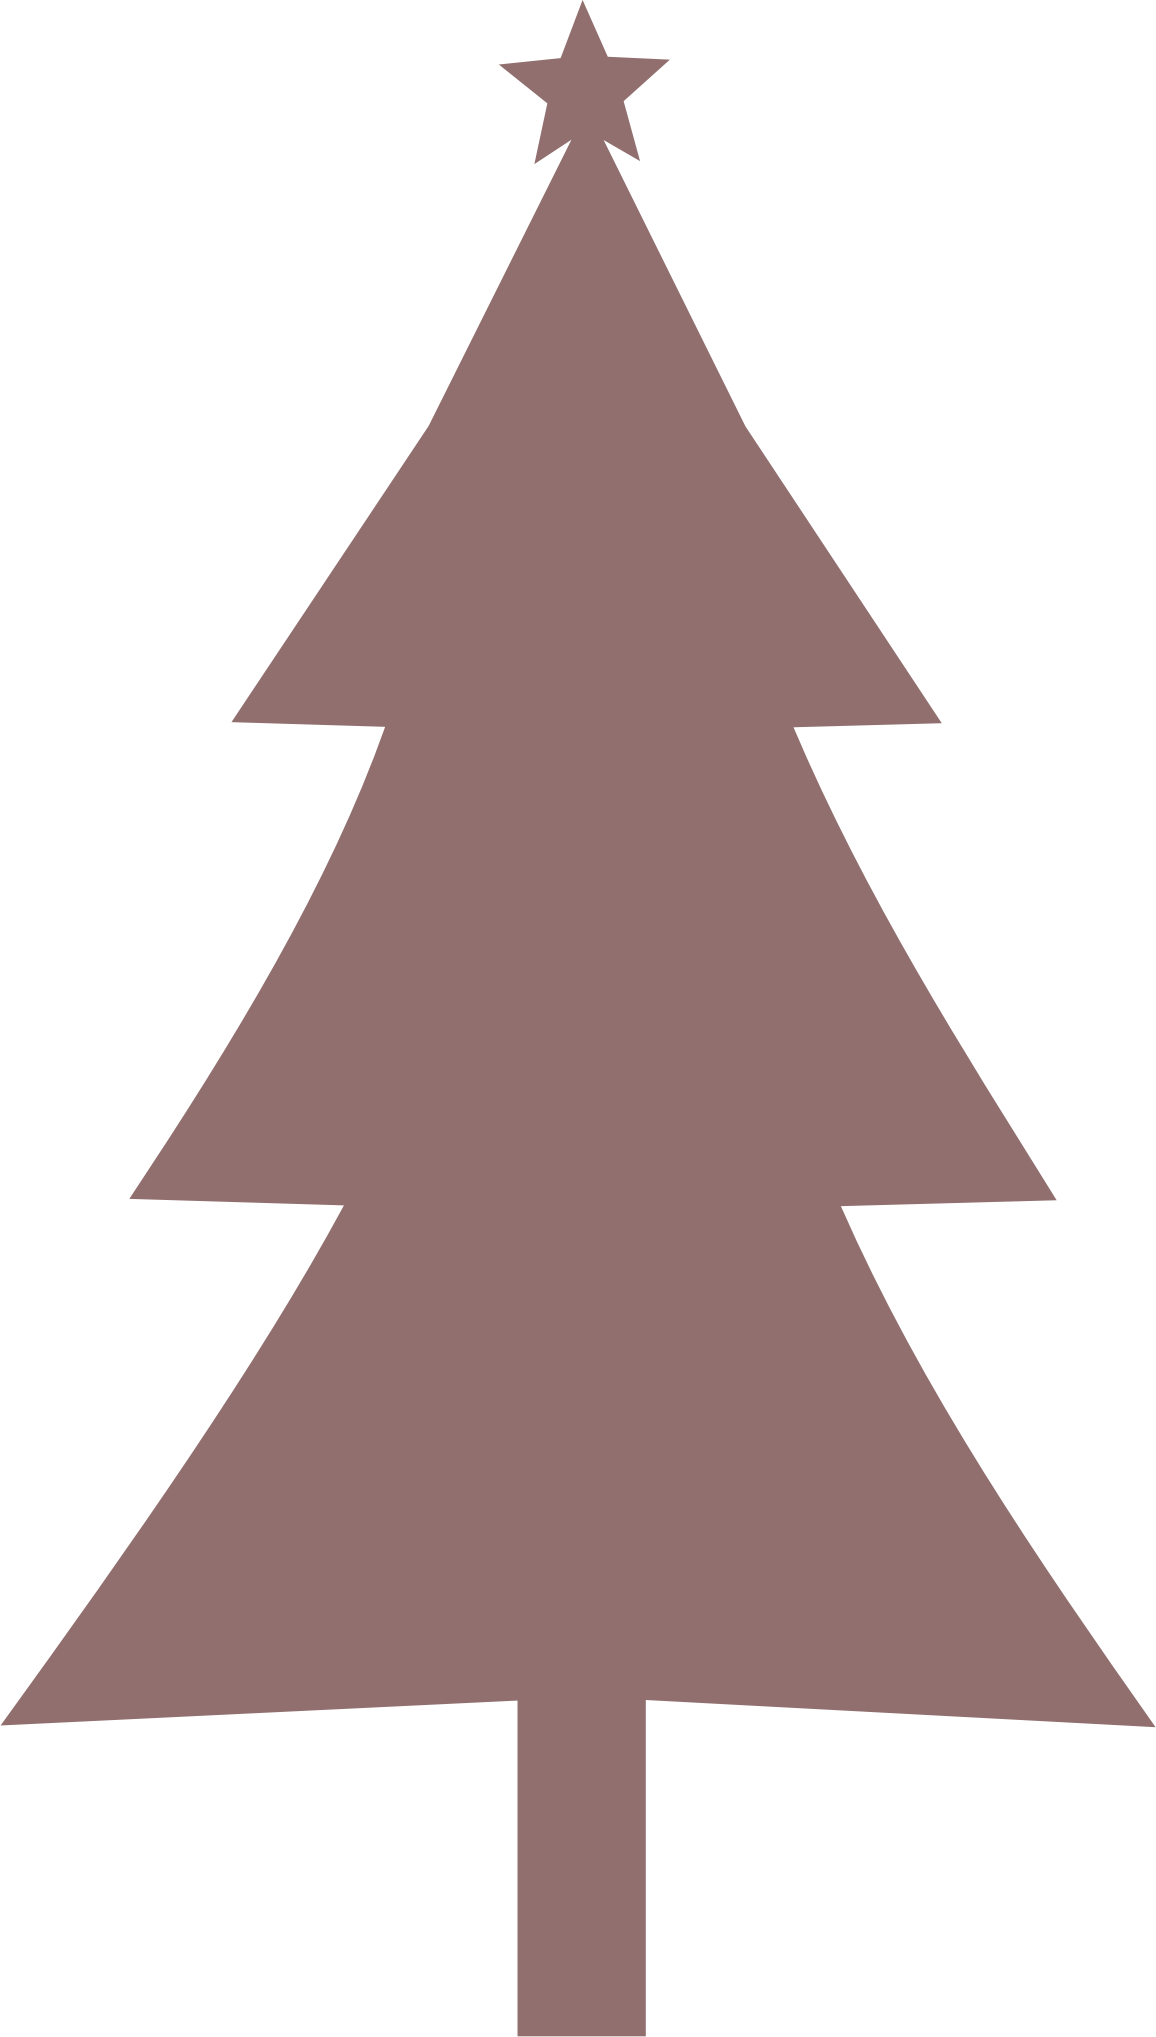 Bare Christmas Tree Svg.Christmas Tree Silhouette Transparent Png Clipart Free